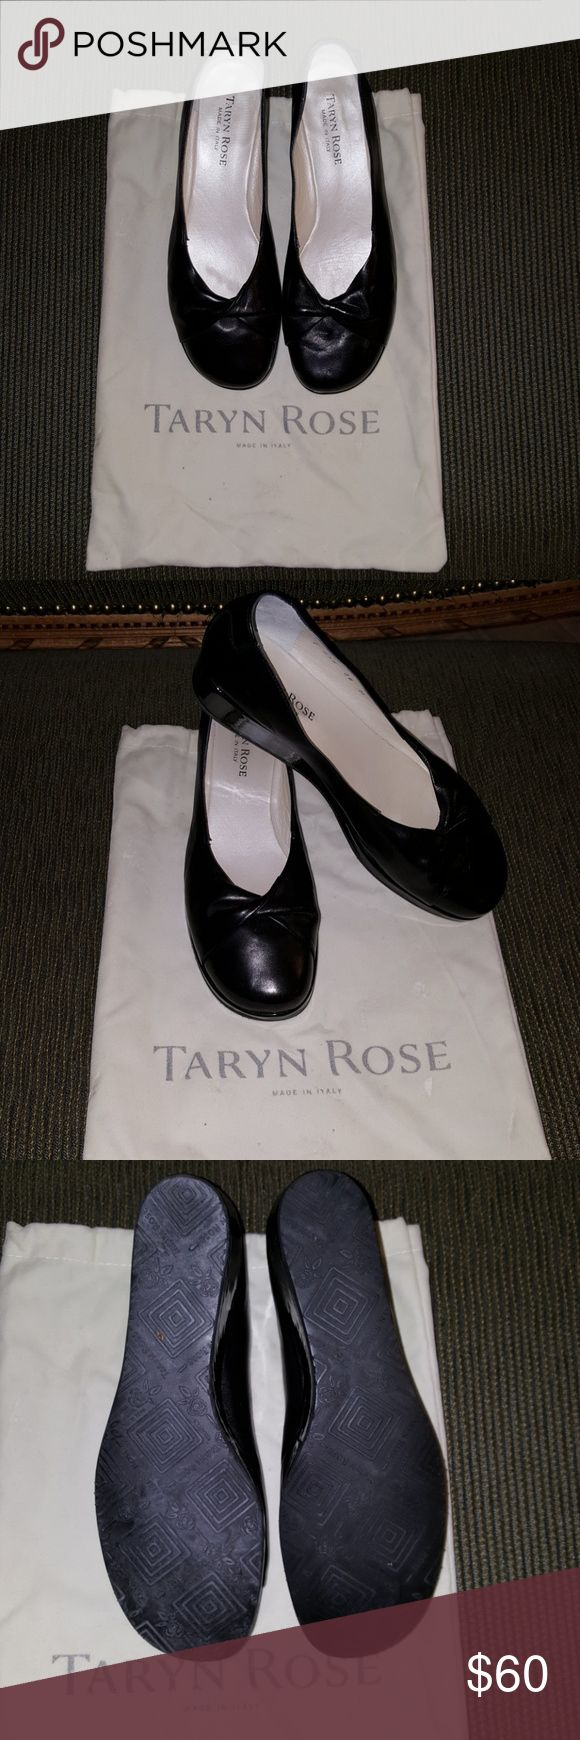 Taryn Rose black shoes Beautiful Taryn Rose black shoes with wedge heel and closed toe. These have only been worn once insides are clean. Very classic but updated Style. These shoes come with the original dust bag but no box. Taryn Rose Shoes Wedges